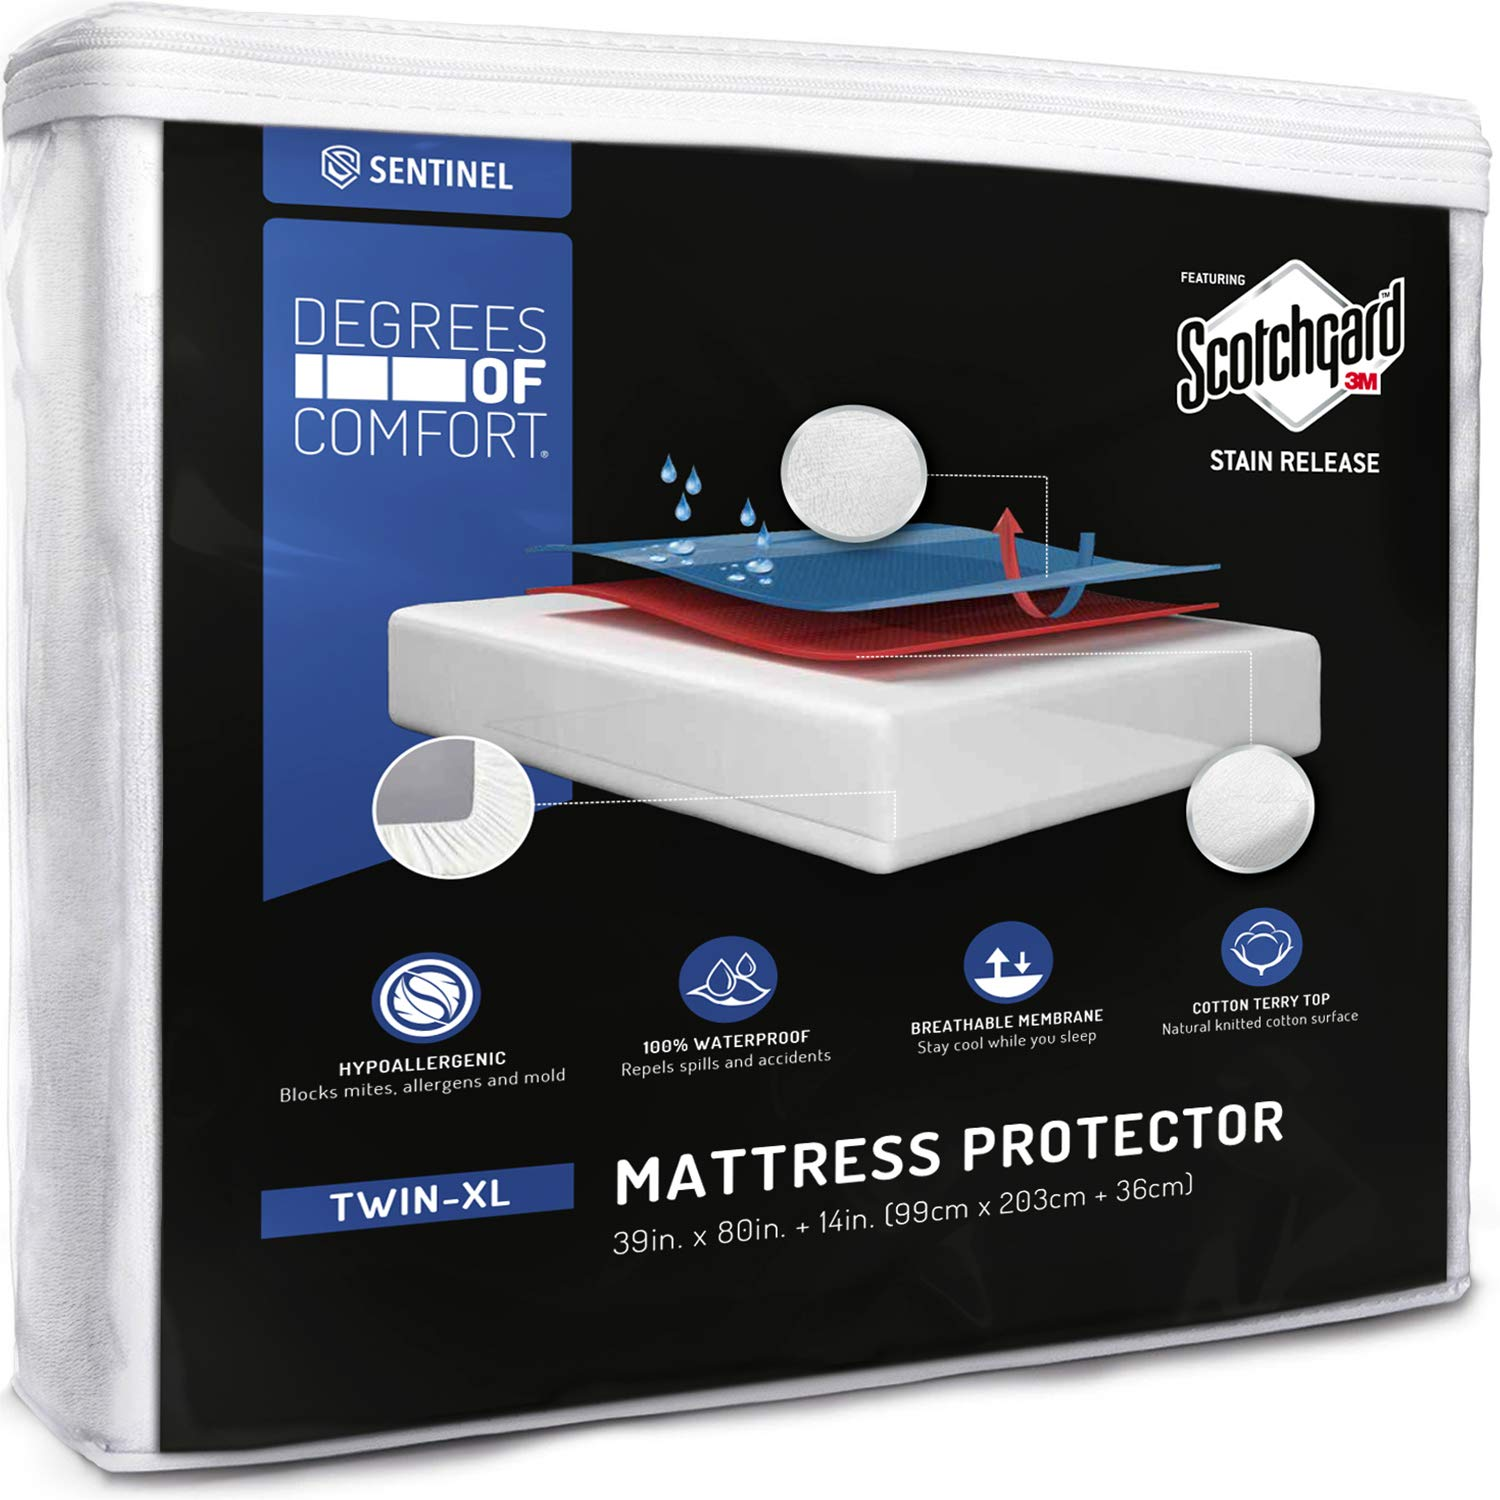 Hypoallergenic Waterproof Twin XL Mattress Protector | Breathable, Fitted Cotton Terry Cover with 3M Scotchgard Stain Release Technology | Urine and Spill Protection